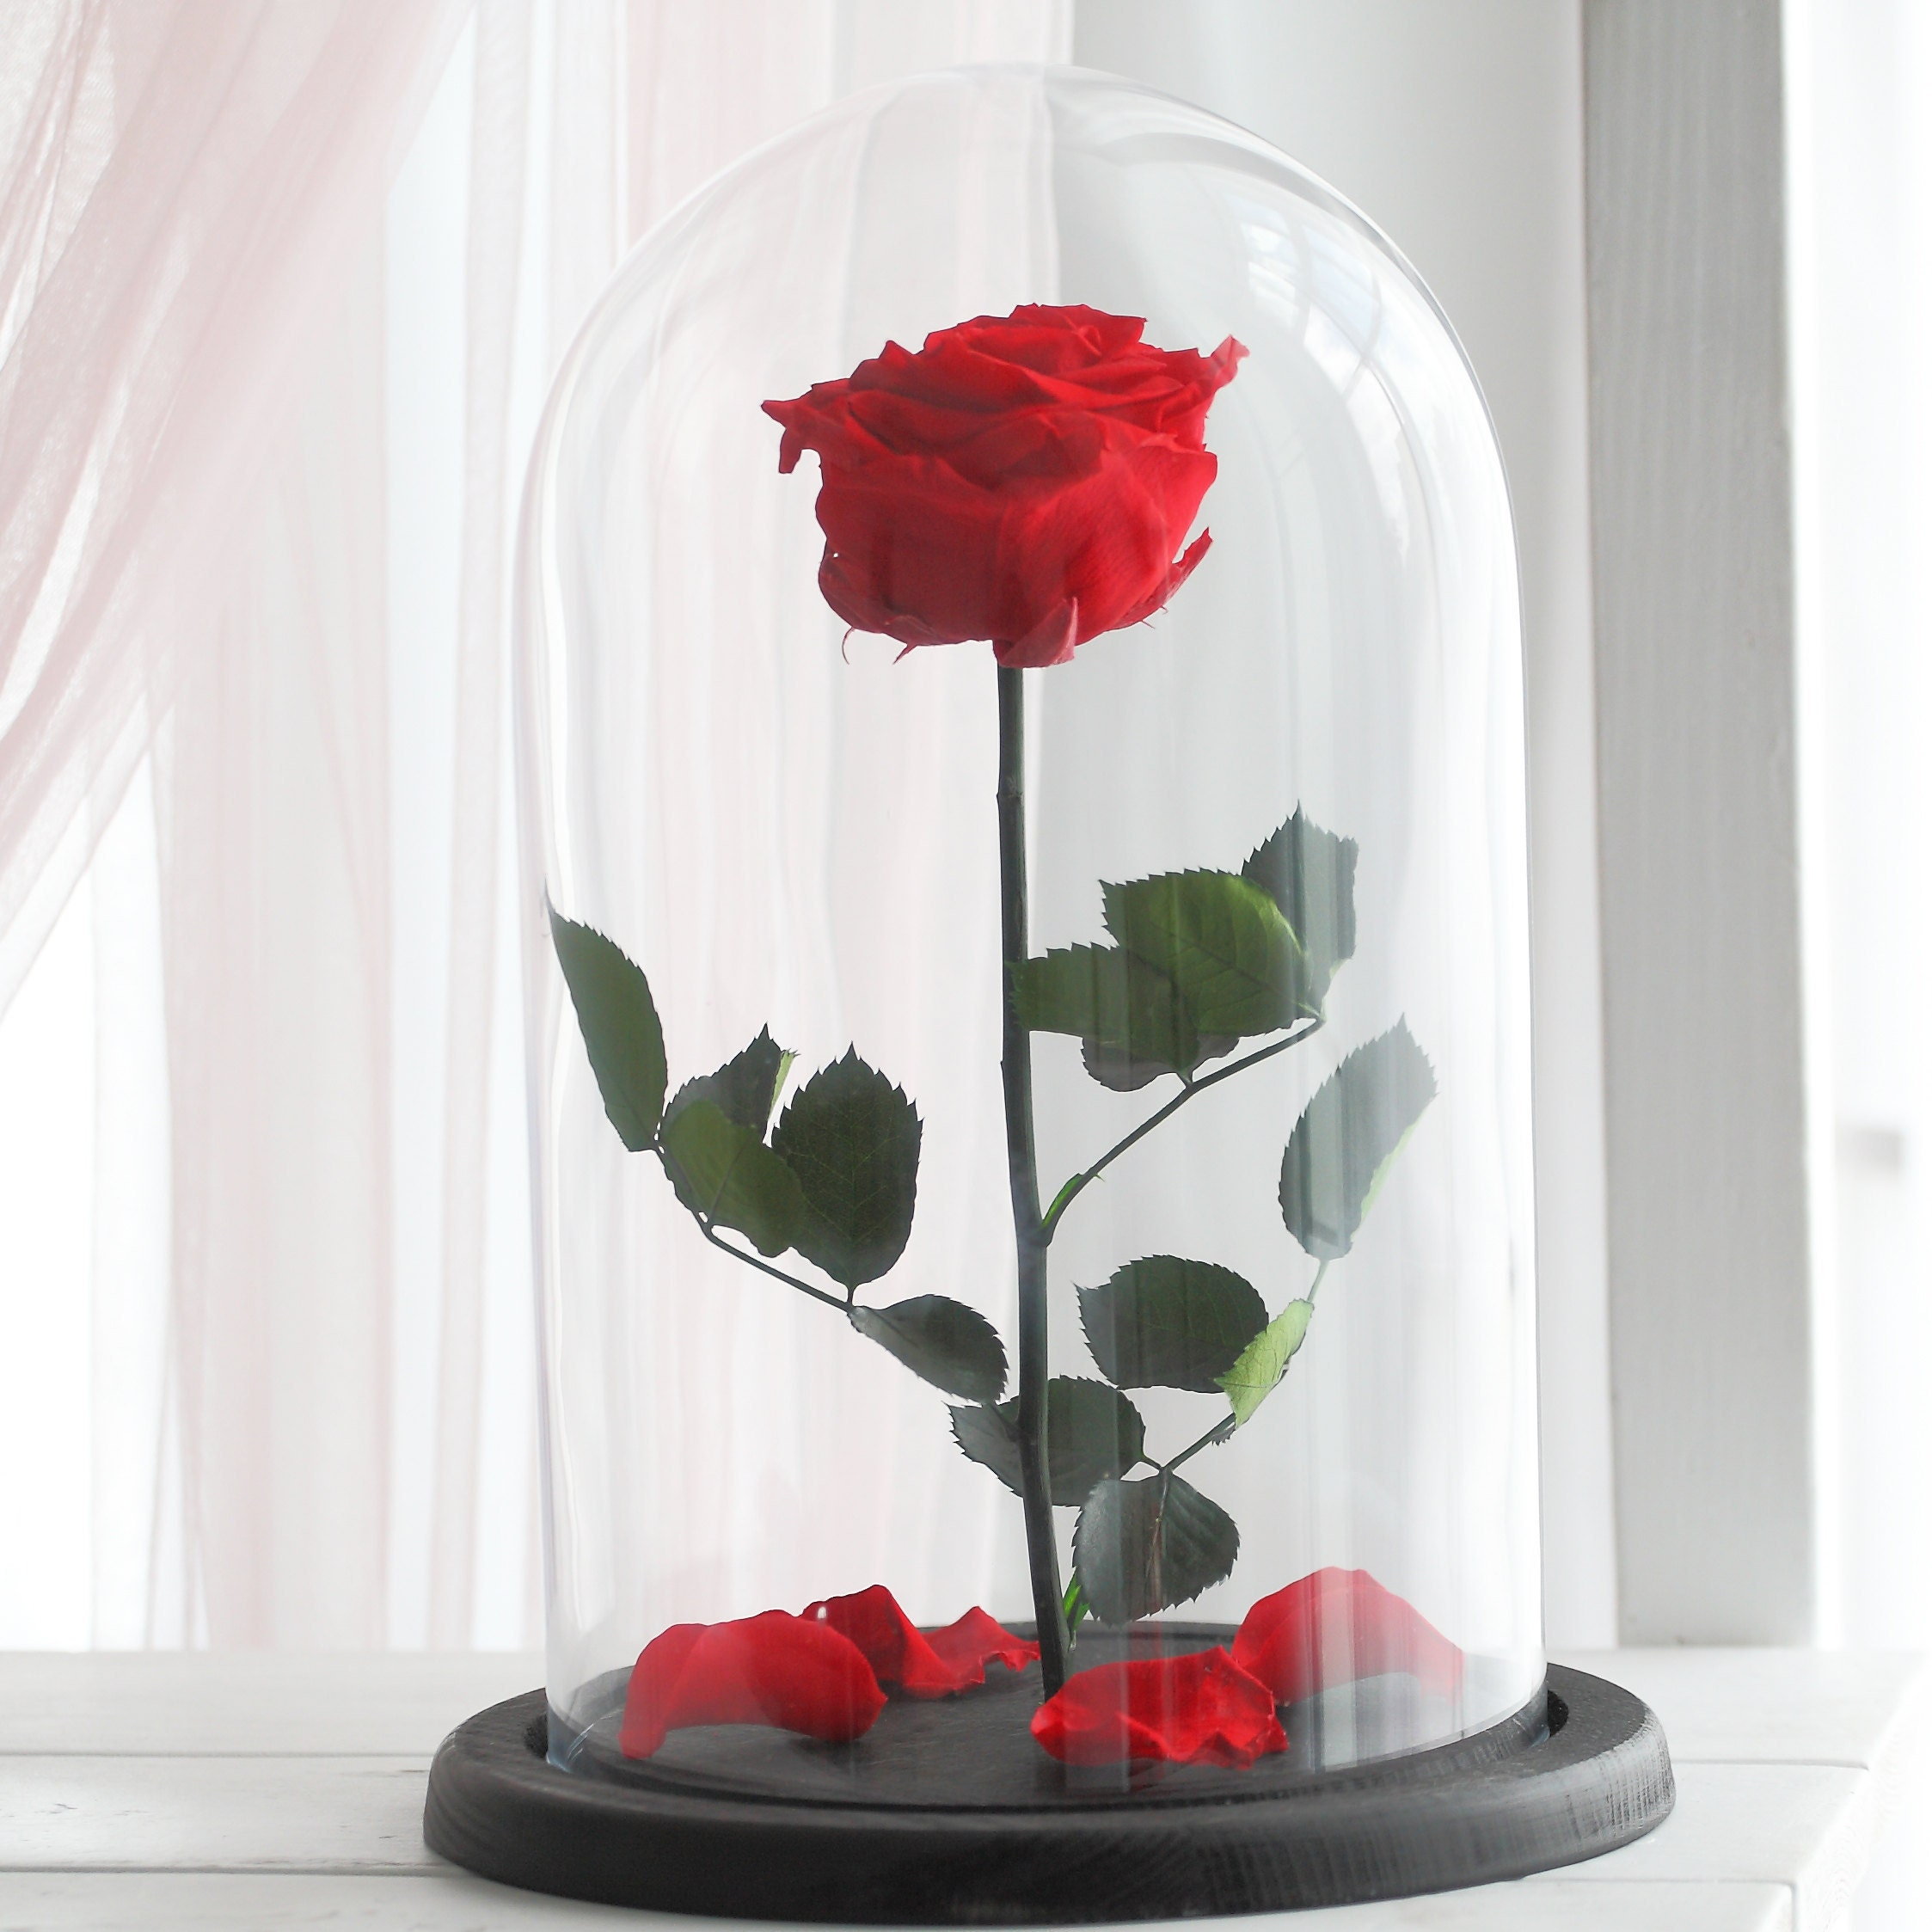 Beauty and the beast rose large red forever rose etsy julianasdesign izmirmasajfo